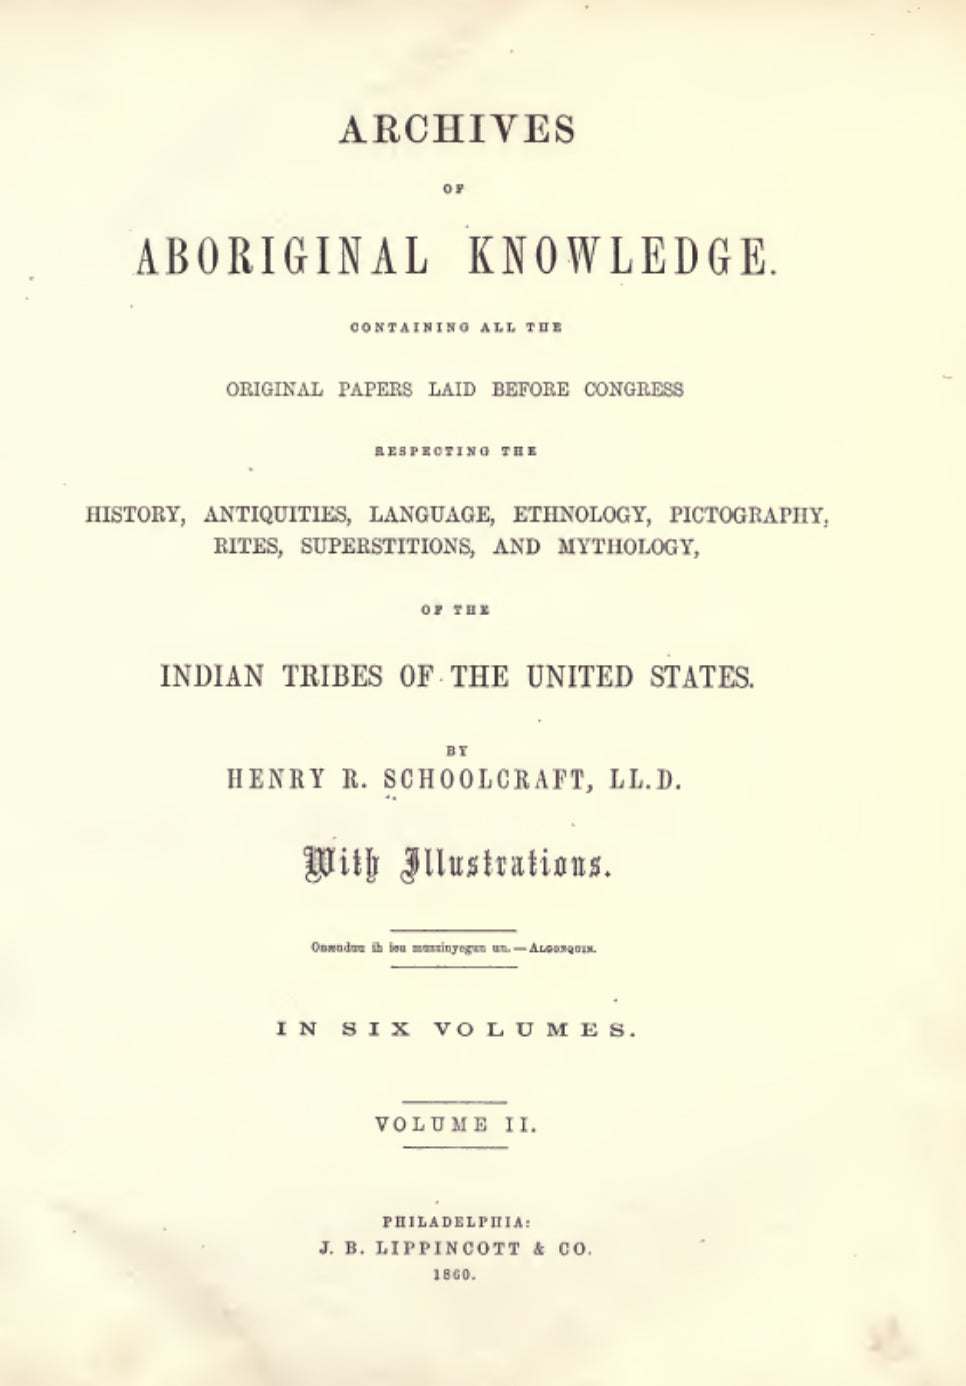 1860 Archives of aboriginal knowledge Vol 2